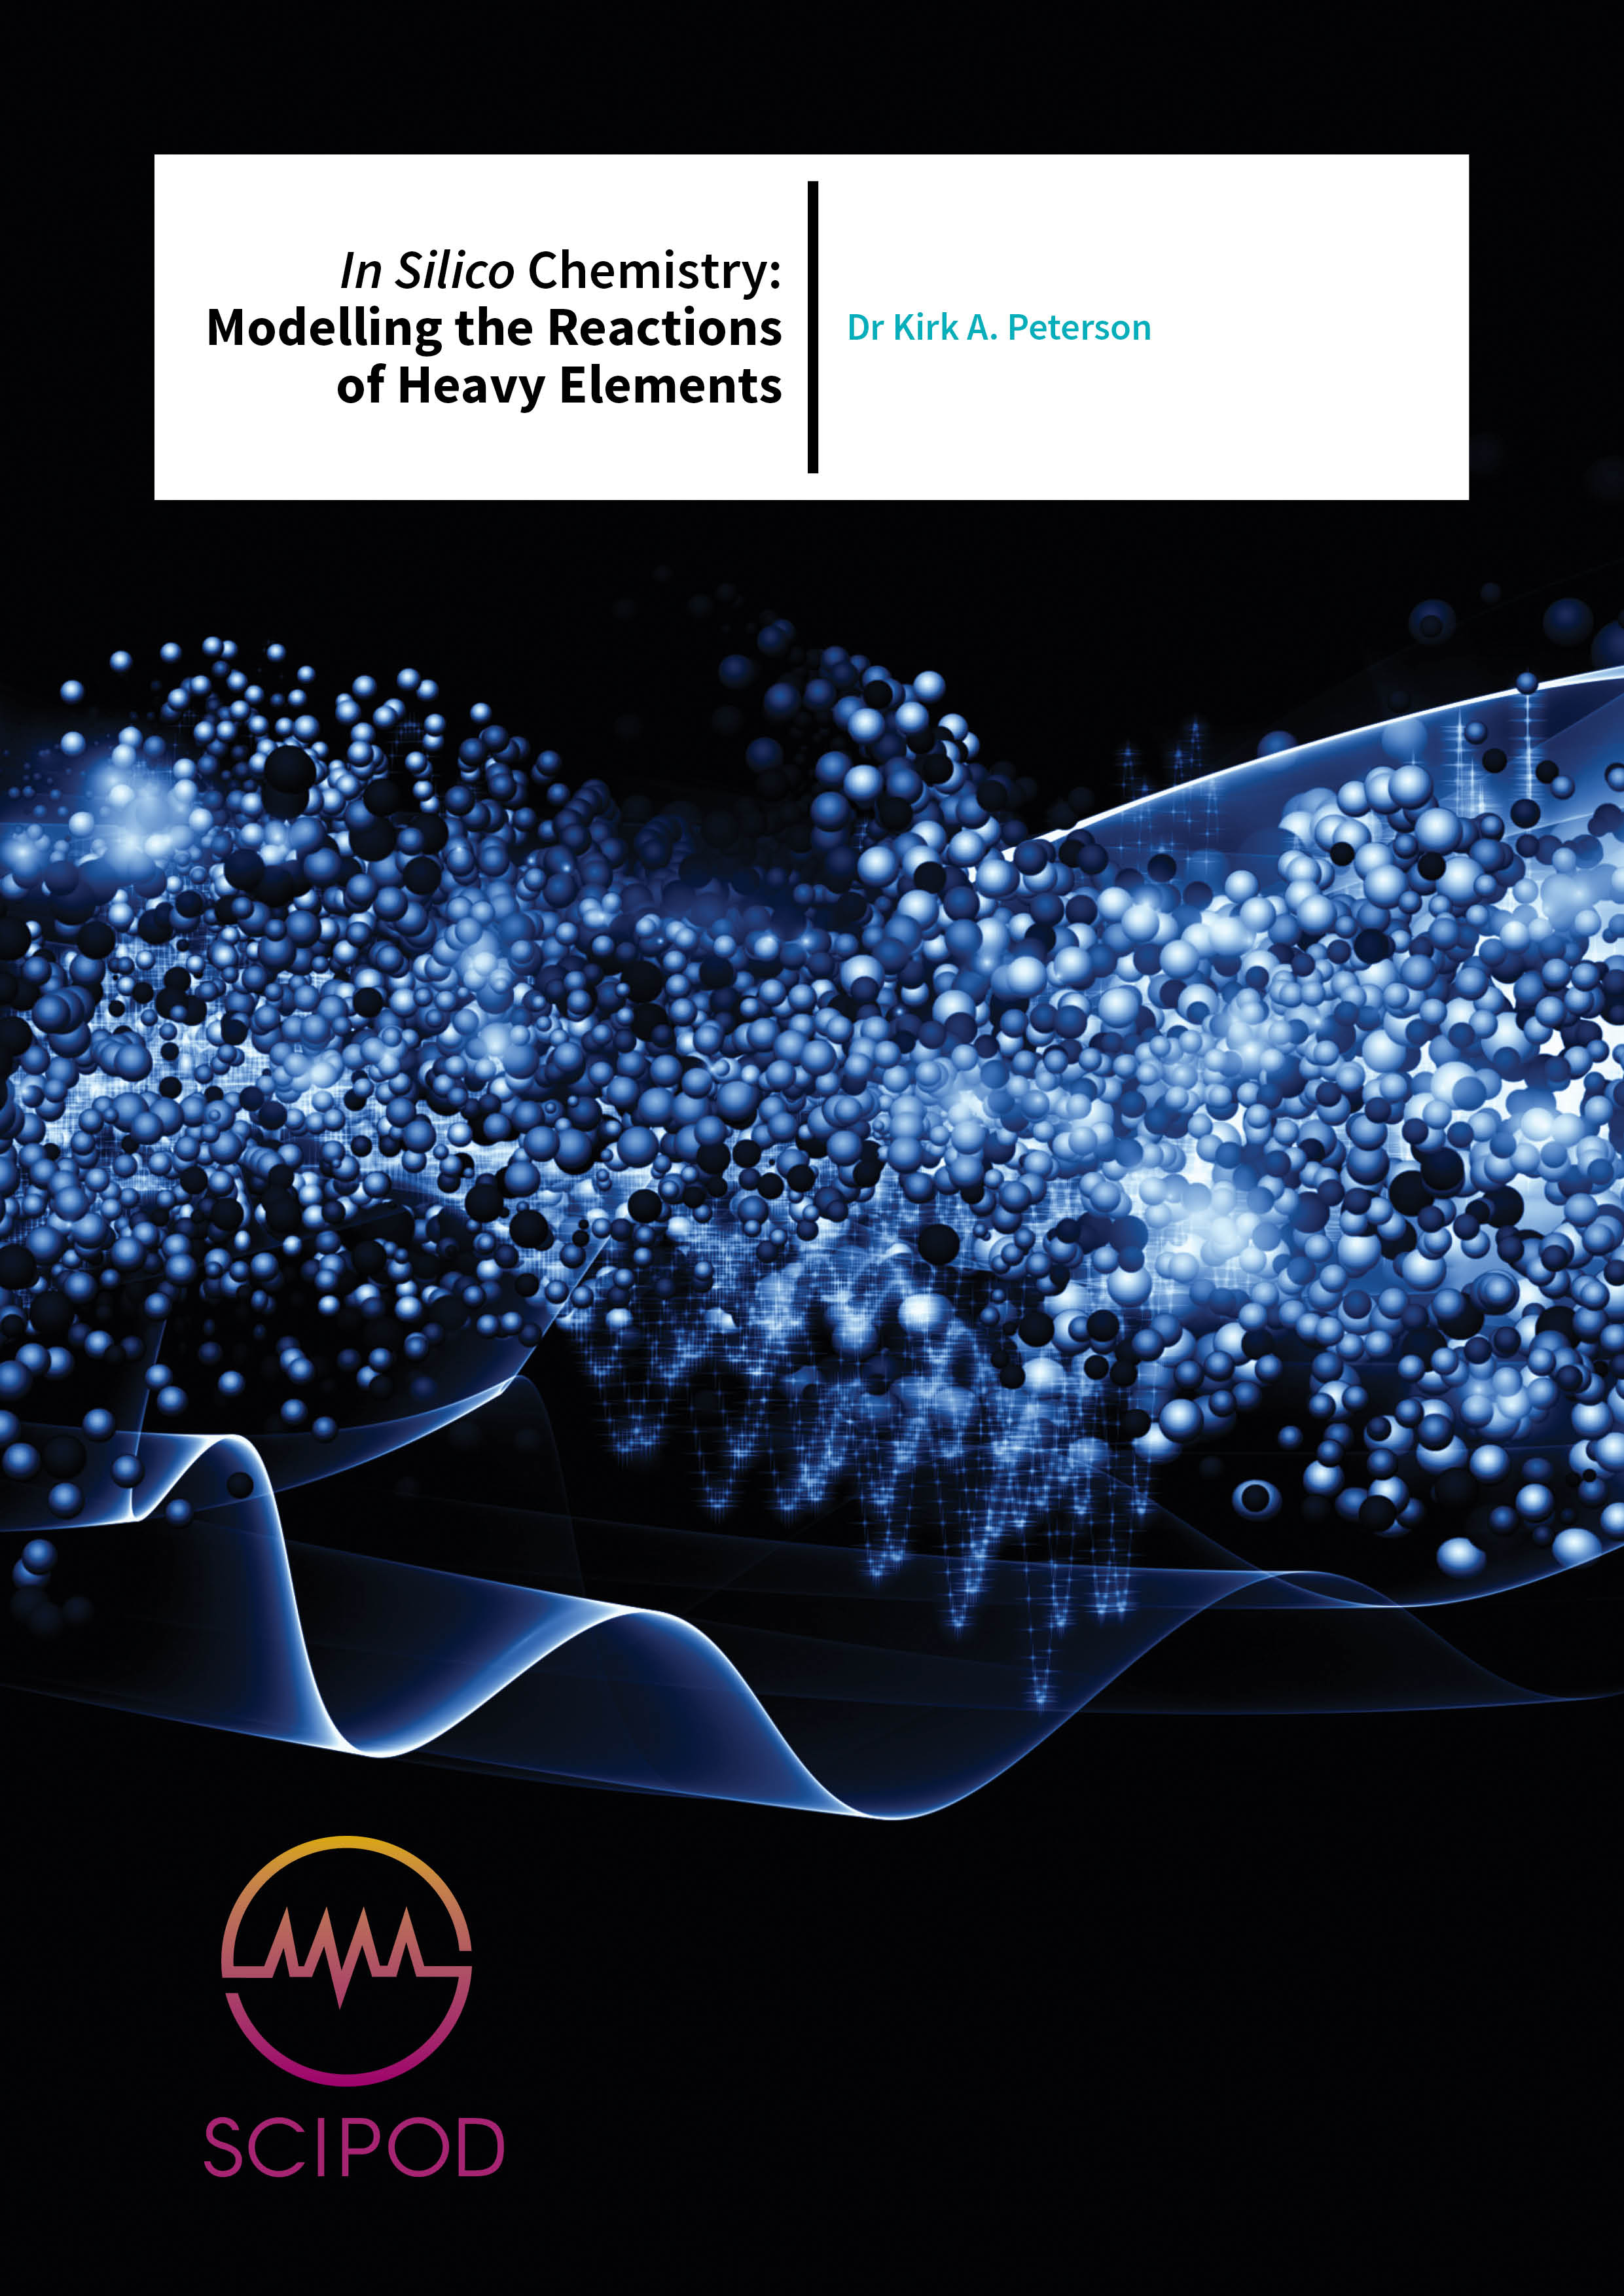 In Silico Chemistry Modelling the Reactions of Heavy Elements – Dr Kirk A. Peterson, Washington State University